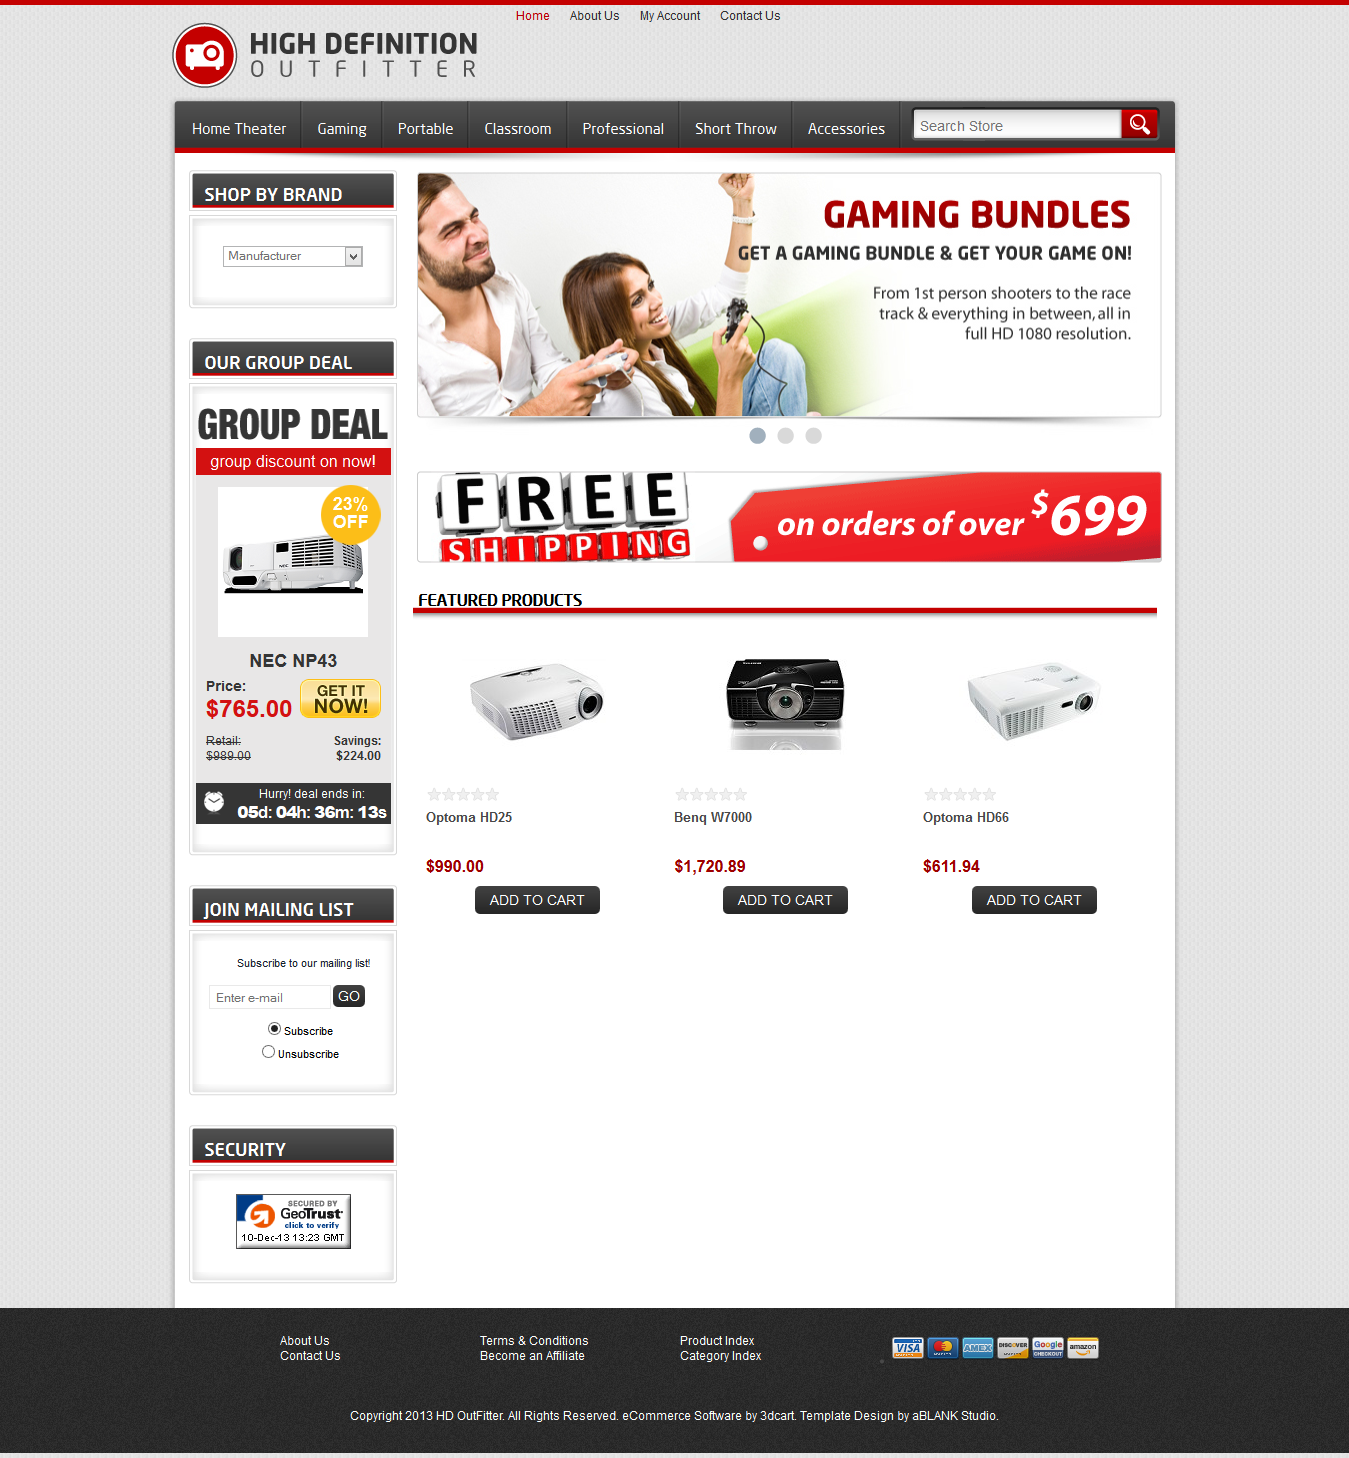 HDOutfitter 3DCart Website Template Design and Development